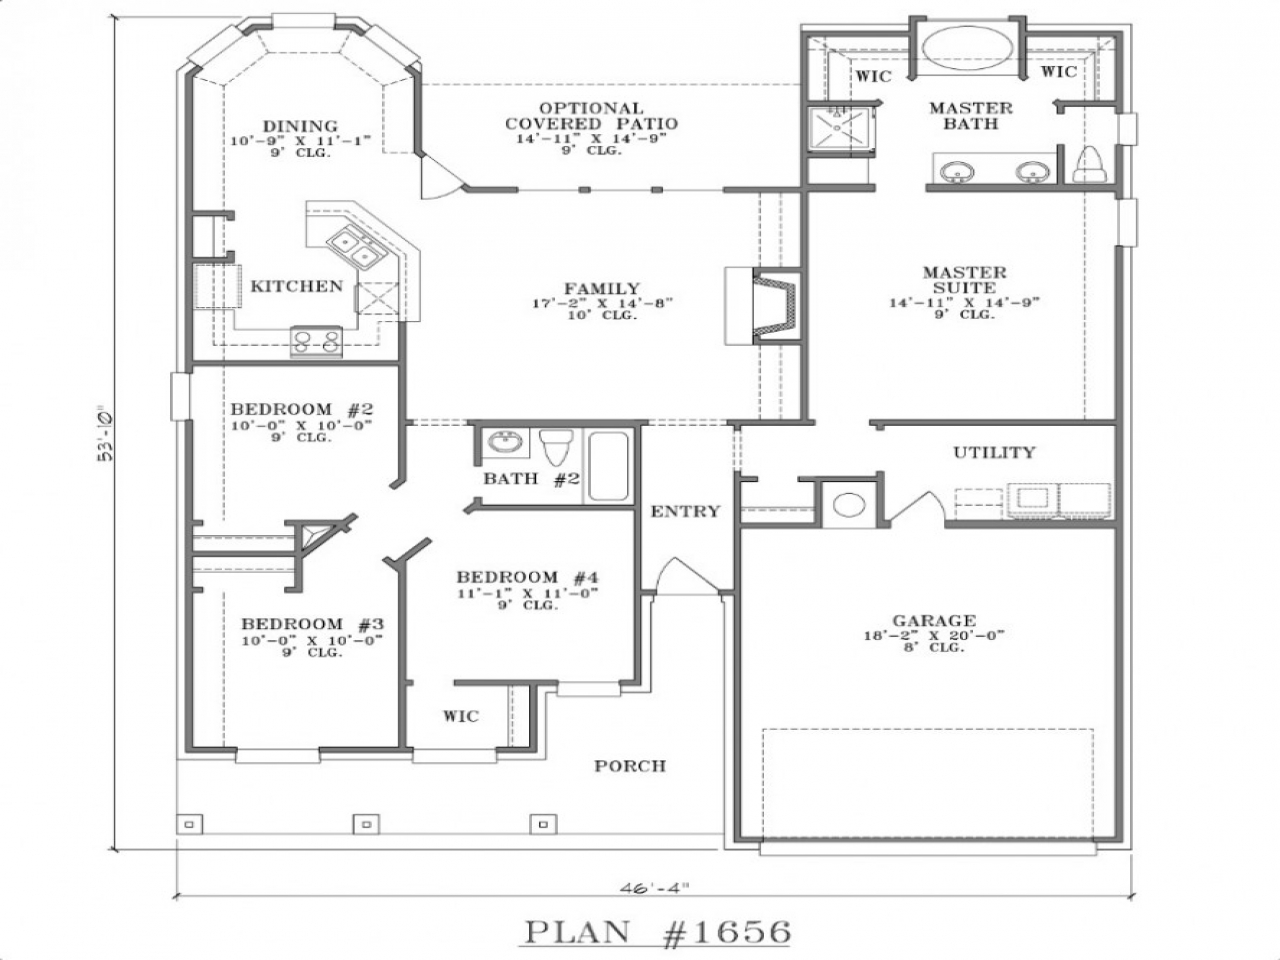 2 Bedroom House Simple Plan Small Two Bedroom House Floor ...